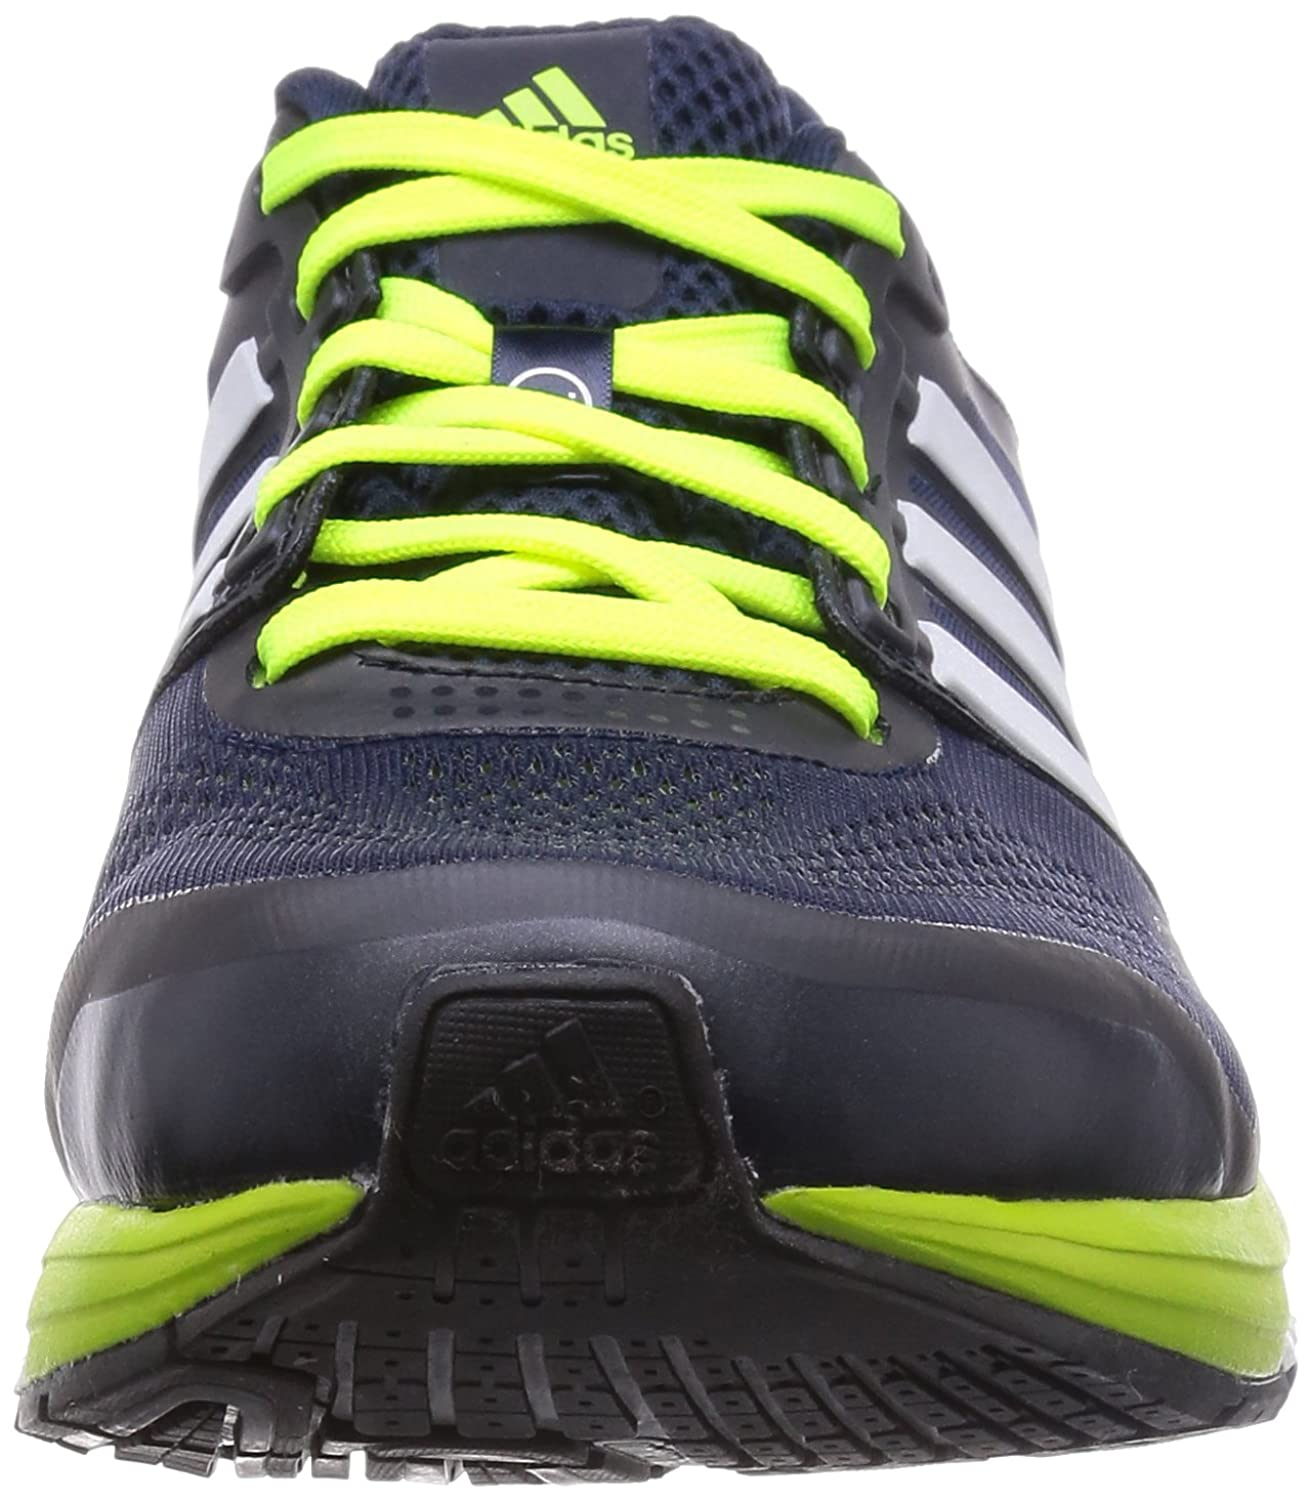 adidas Men's Supernova Glide Boost 7 M Blue, White and Yellow Mesh Running  Shoes - 6 UK: Buy Online at Low Prices in India - Amazon.in